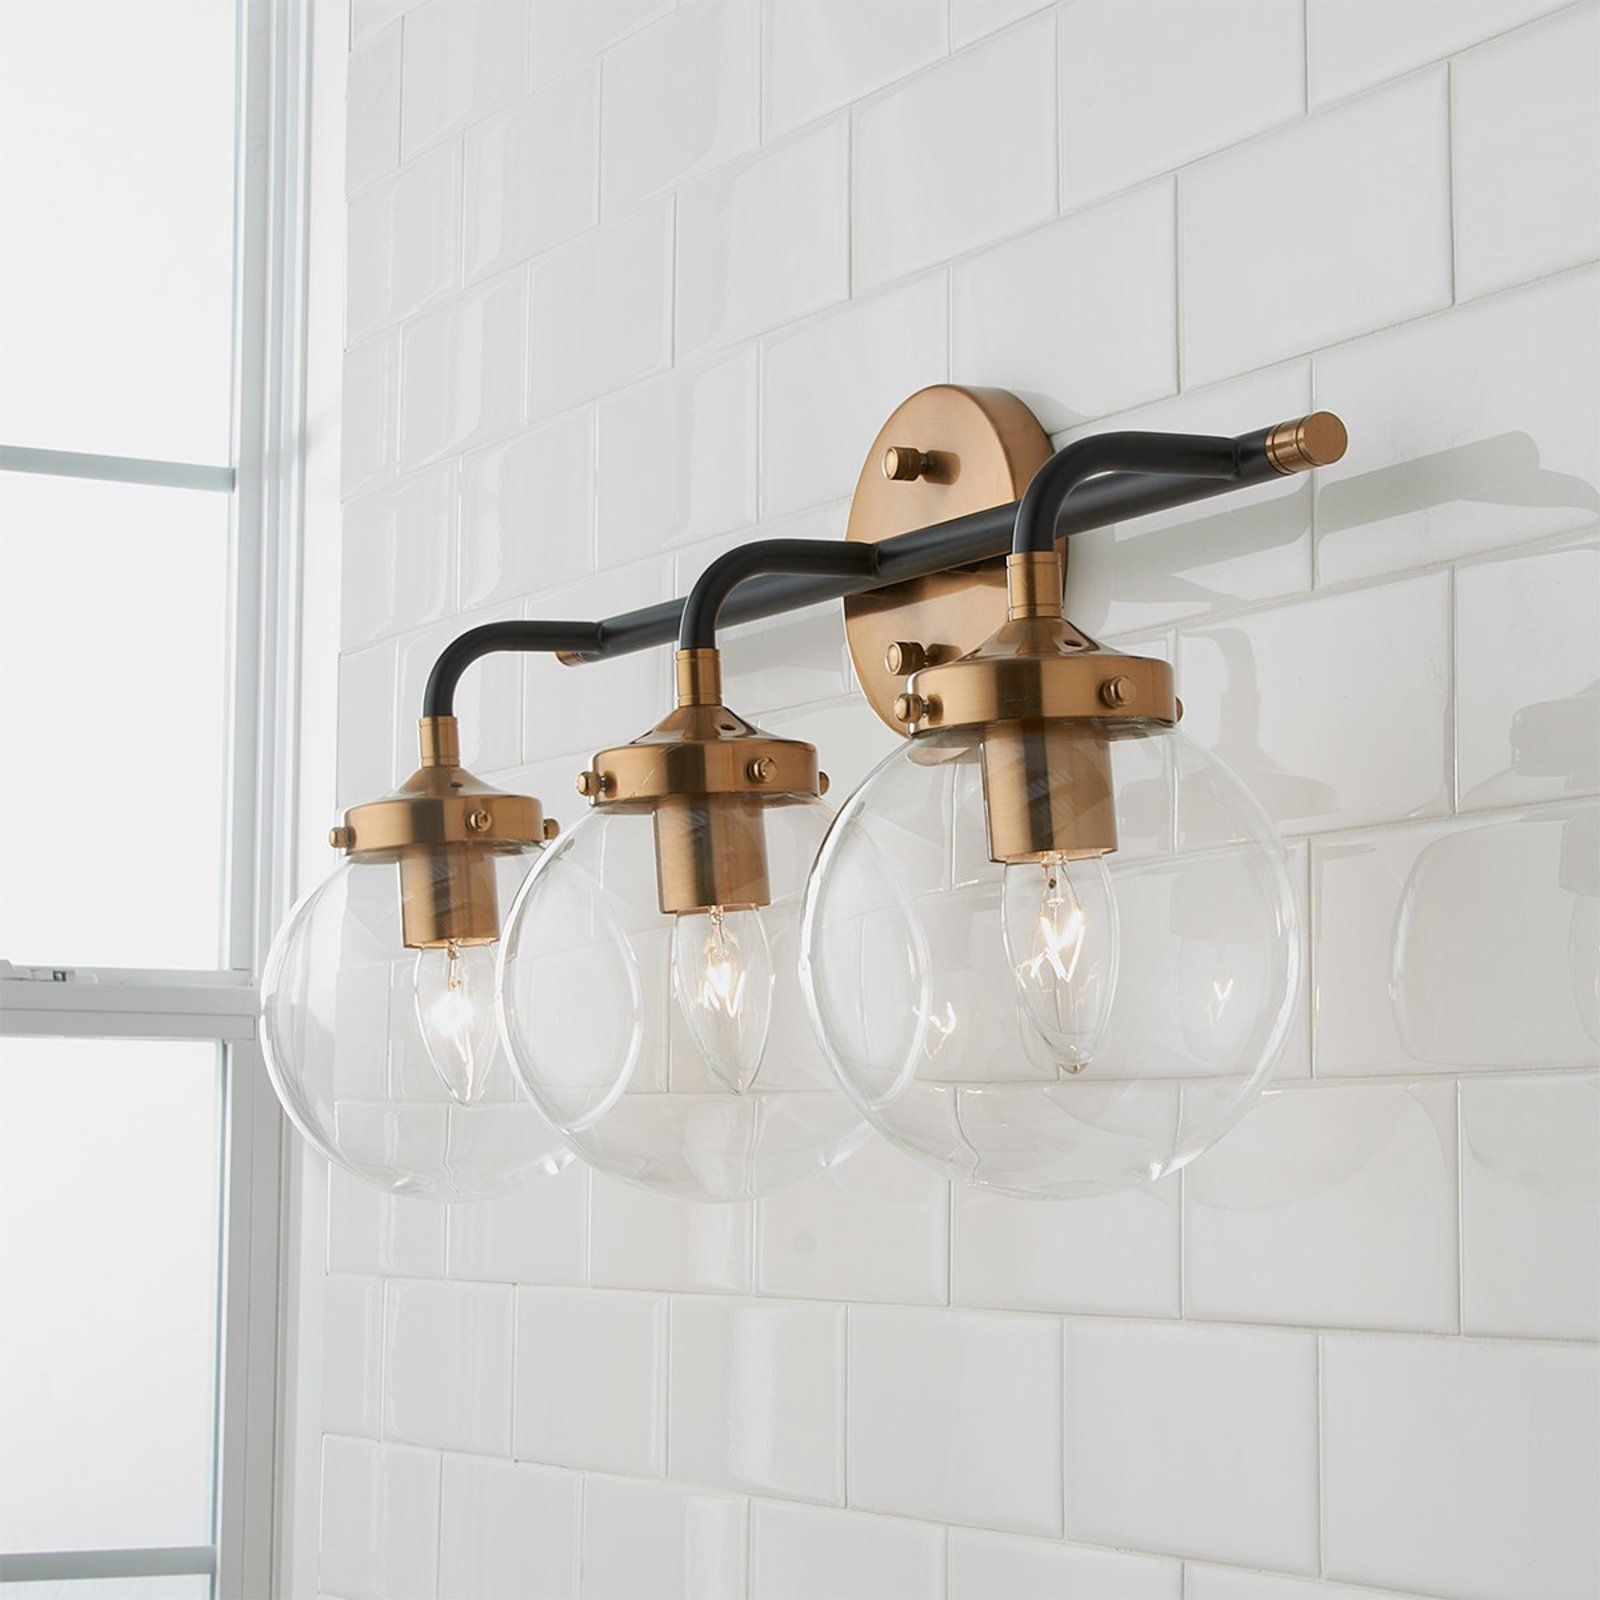 Boudreaux 3 Vanity In Matte Black Antique Gold In 2020 Modern Vanity Lighting Vanity Lighting Bathroom Light Fixtures